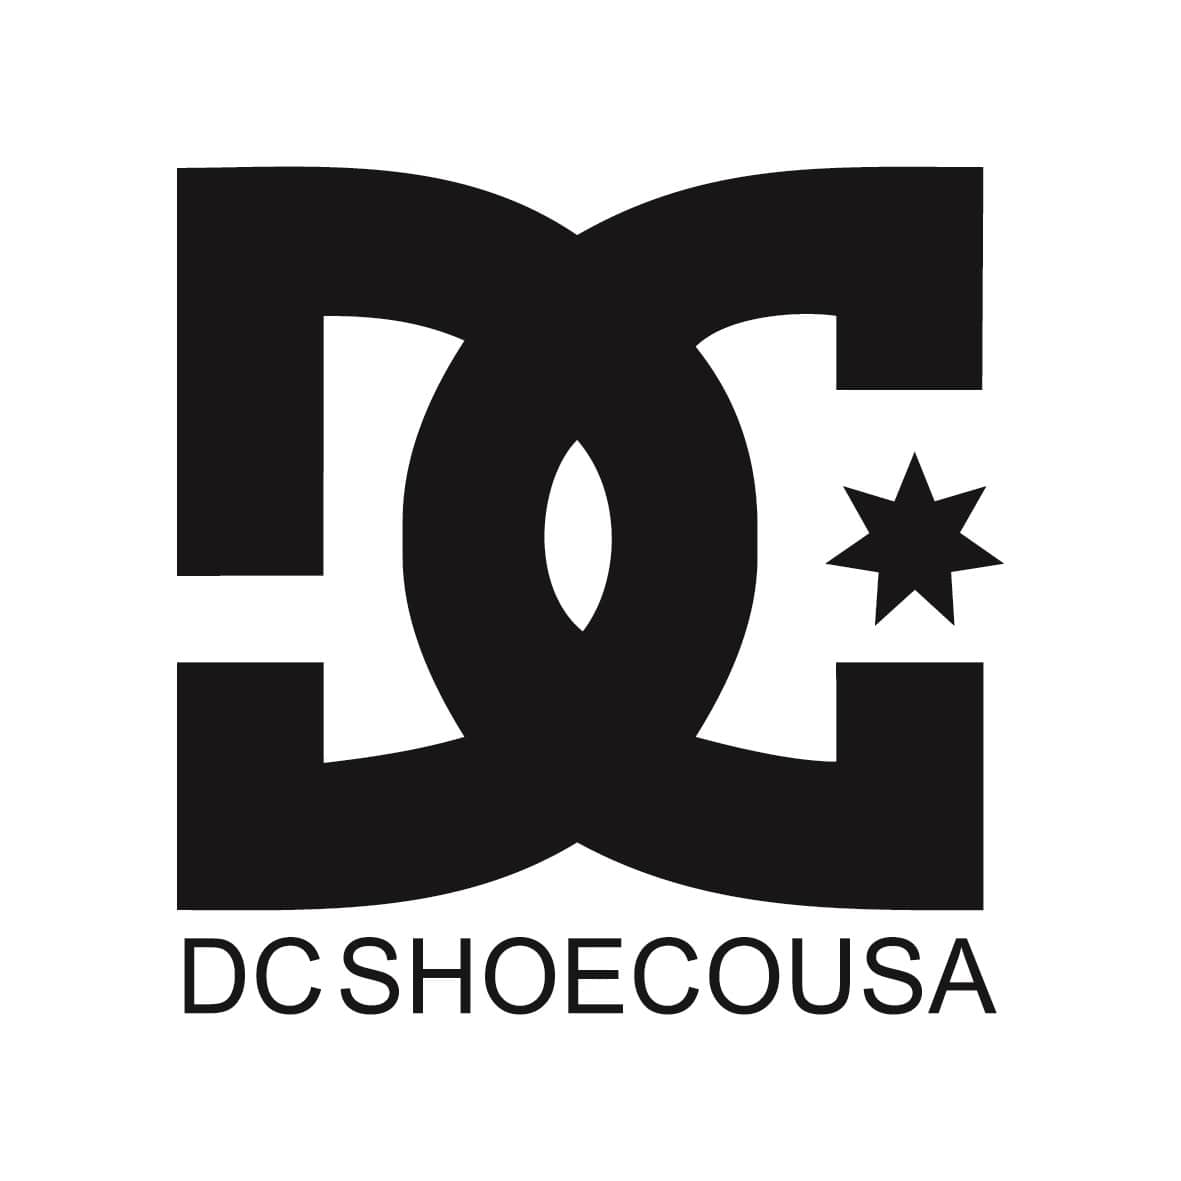 dc-shoes-ref5-co-usa-skate-snow-tuning-sport-automobile-racing-shoes-chaussure-sponsors-min-min